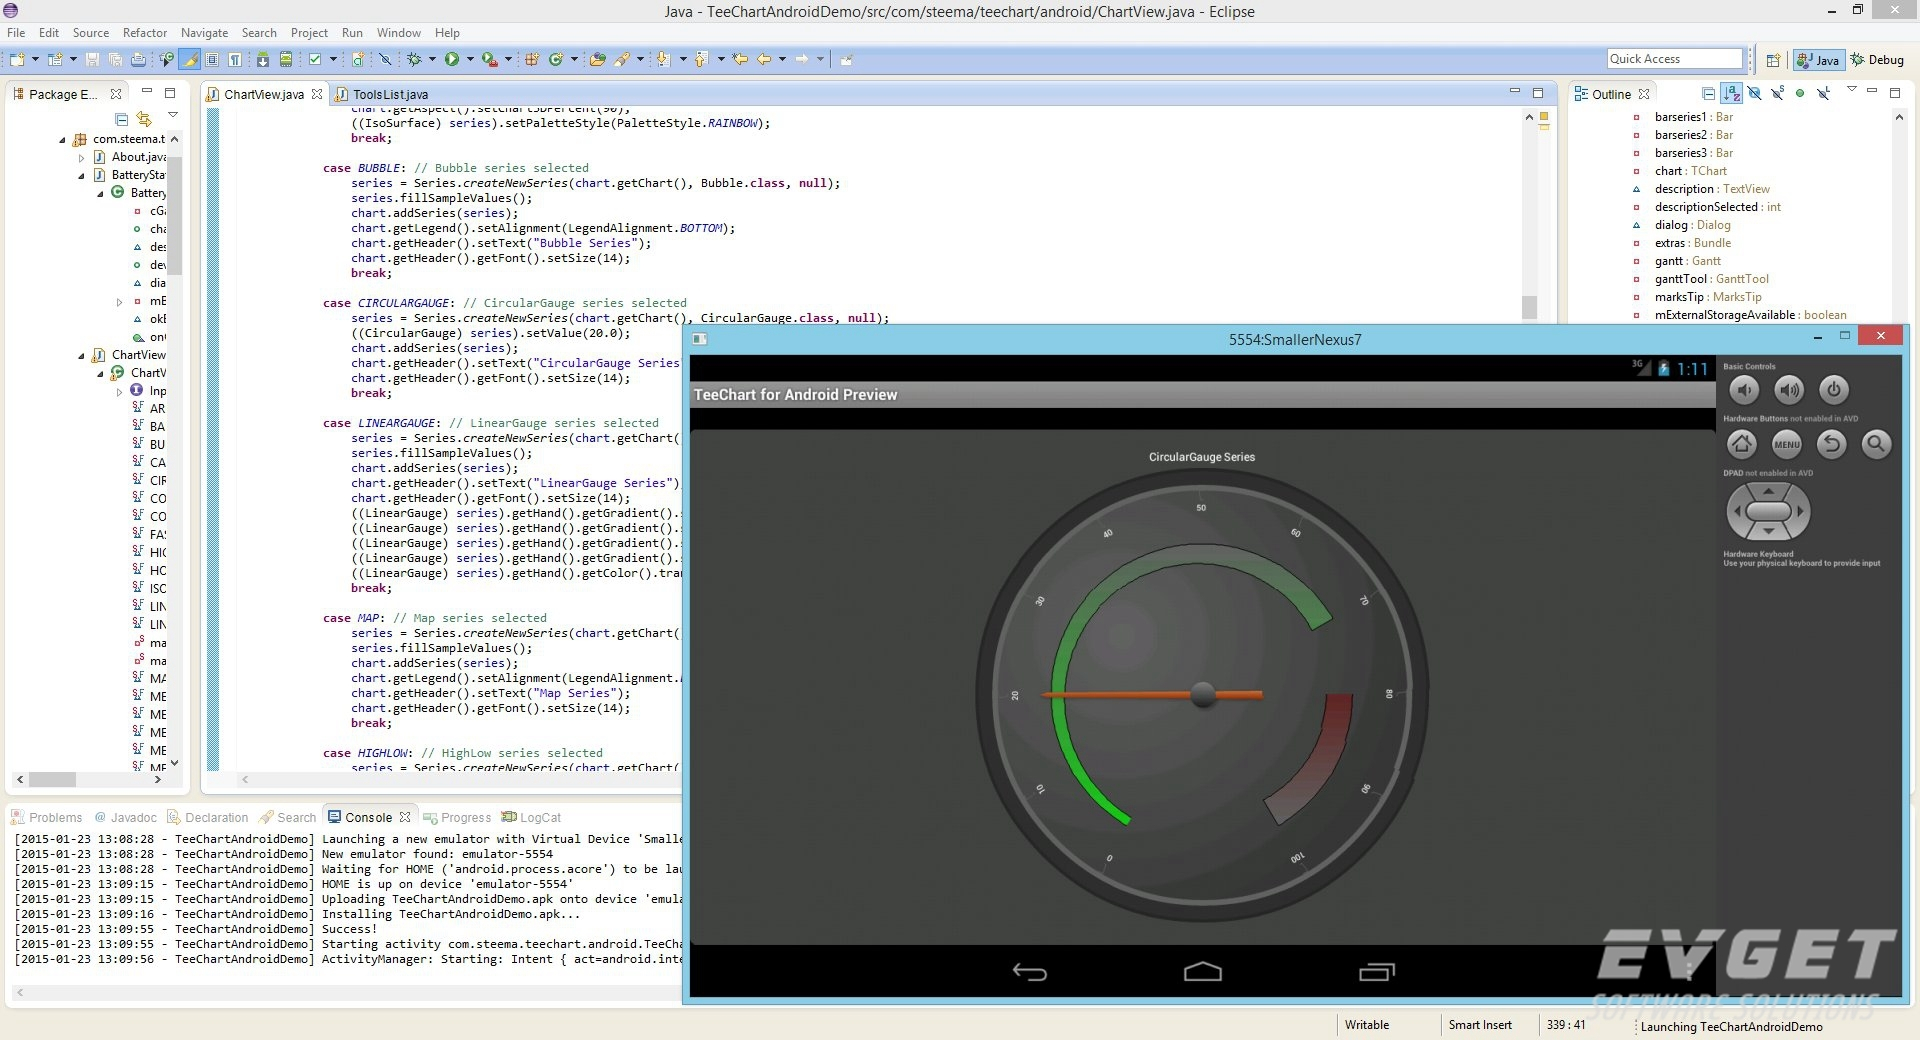 TeeChart Java for Android预览:JavaAndroid